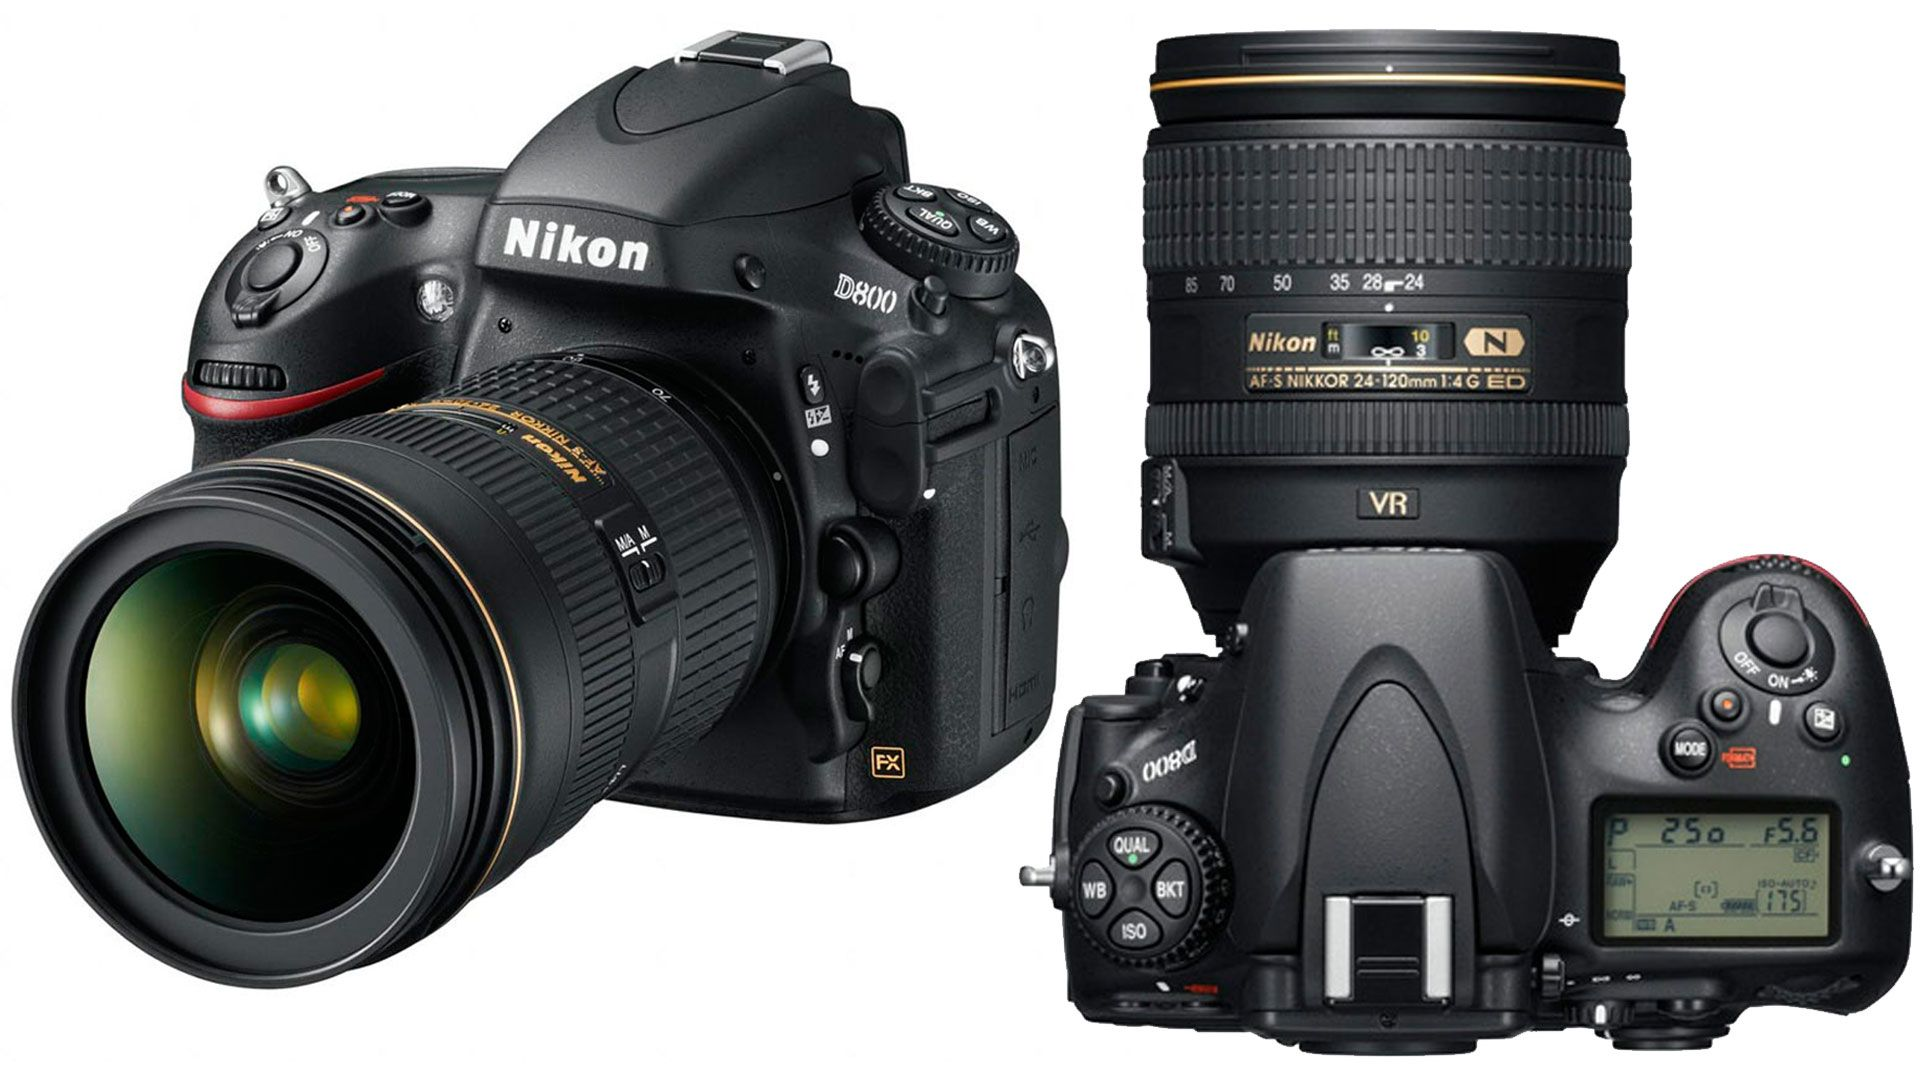 nikon dslr camera wallpaper - Căutare Google | DSLR | Pinterest ...